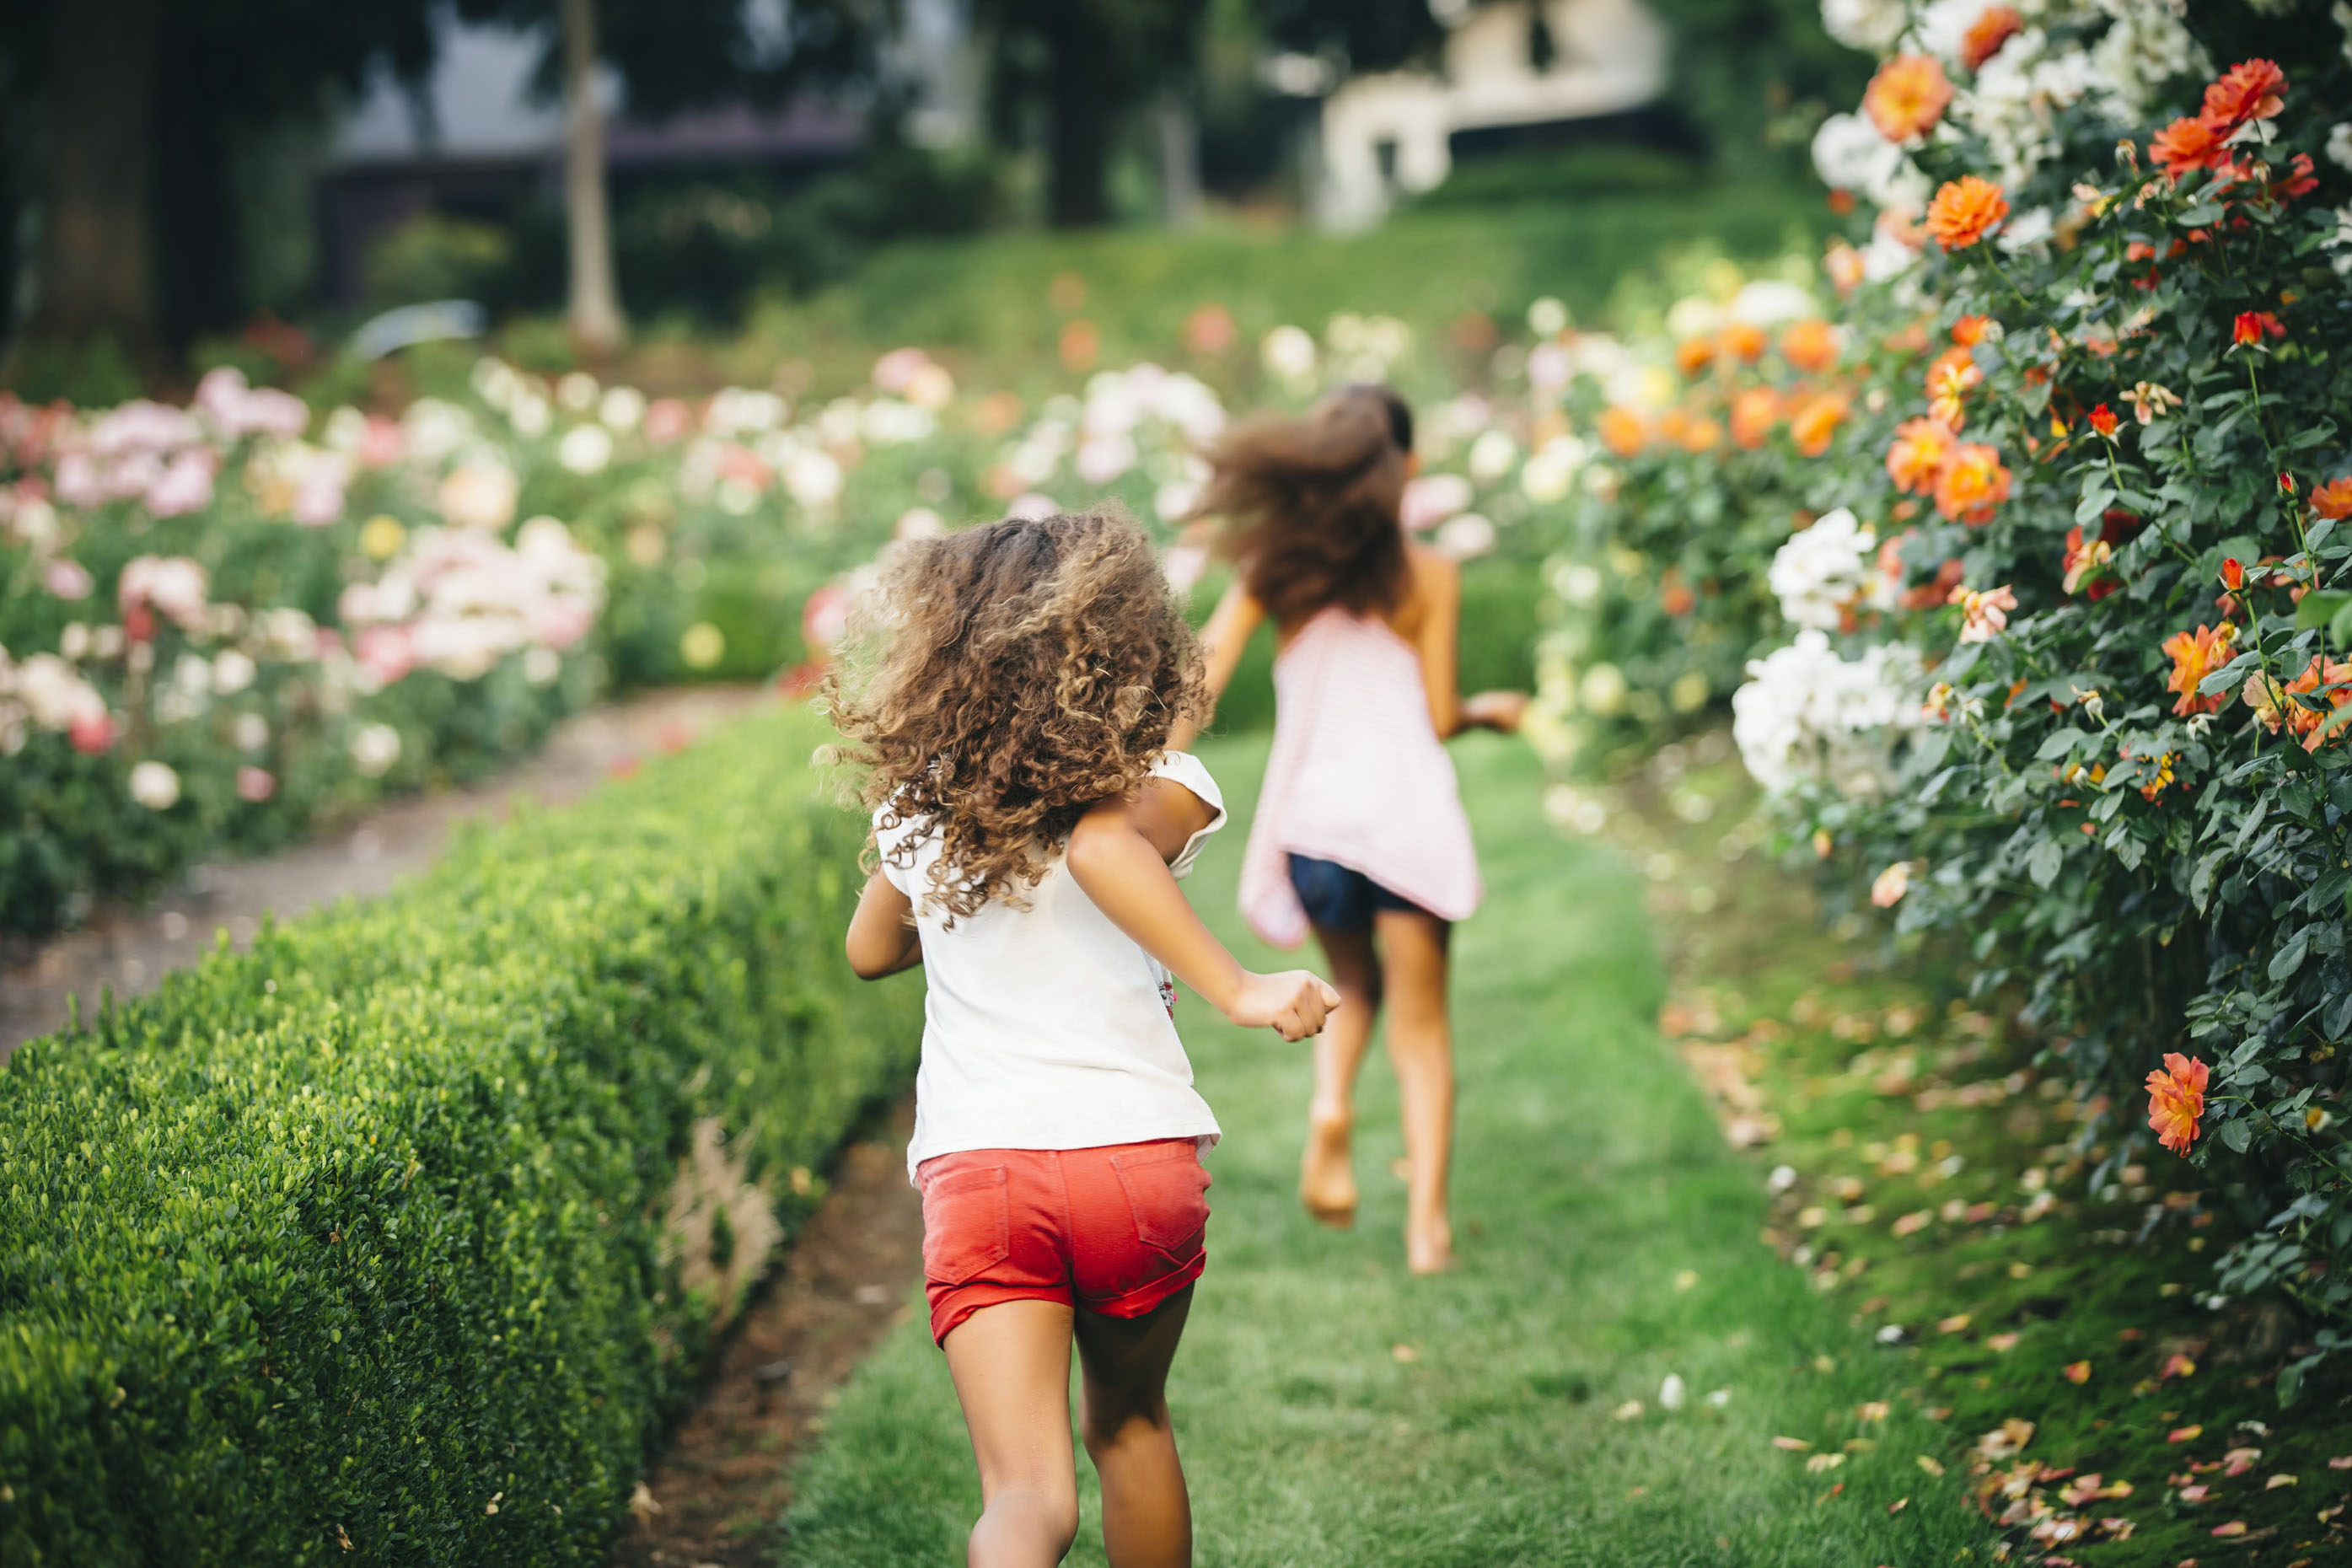 Girls-running-in-rose-garden-Inti-St-Clair-is201508233961